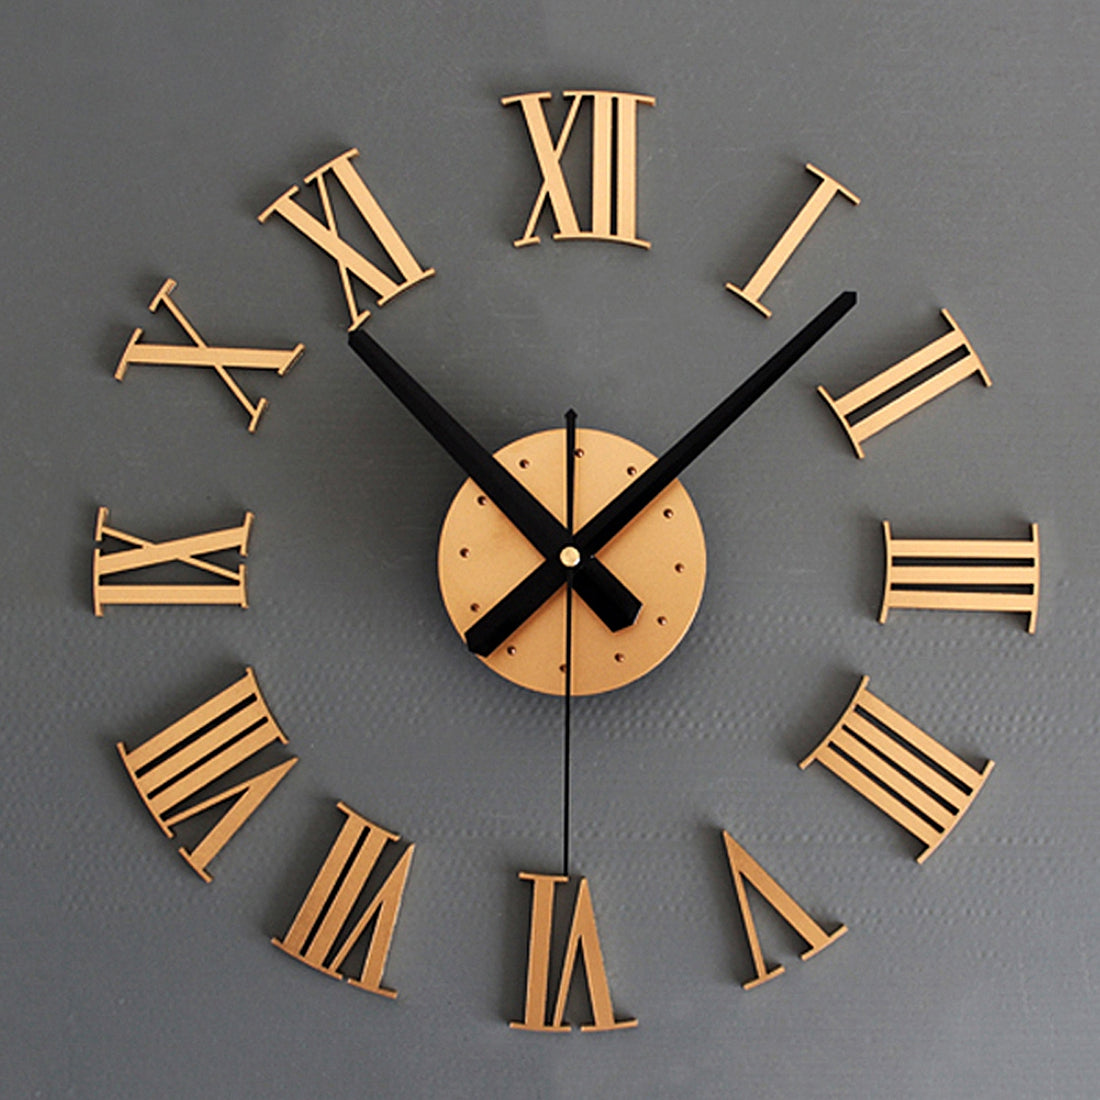 $55 off Luxury 3D Roman Numerals Decorative Wall Clock Was: $74.99 Now: $19.99 Plus Free Shipping.